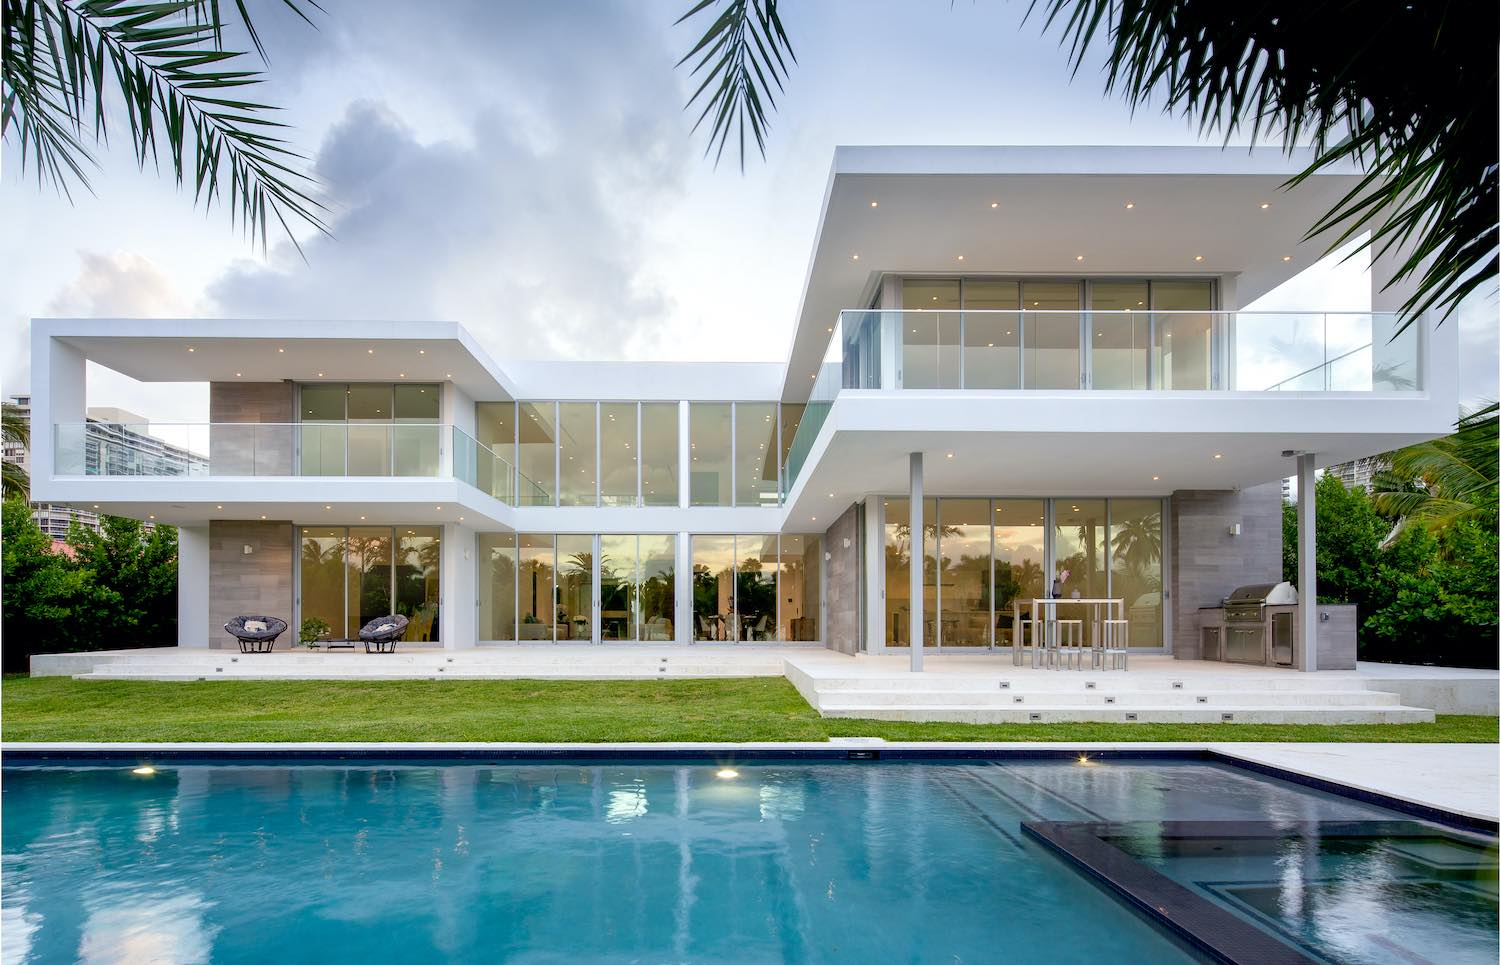 contemporary house with swimming pool at backyard